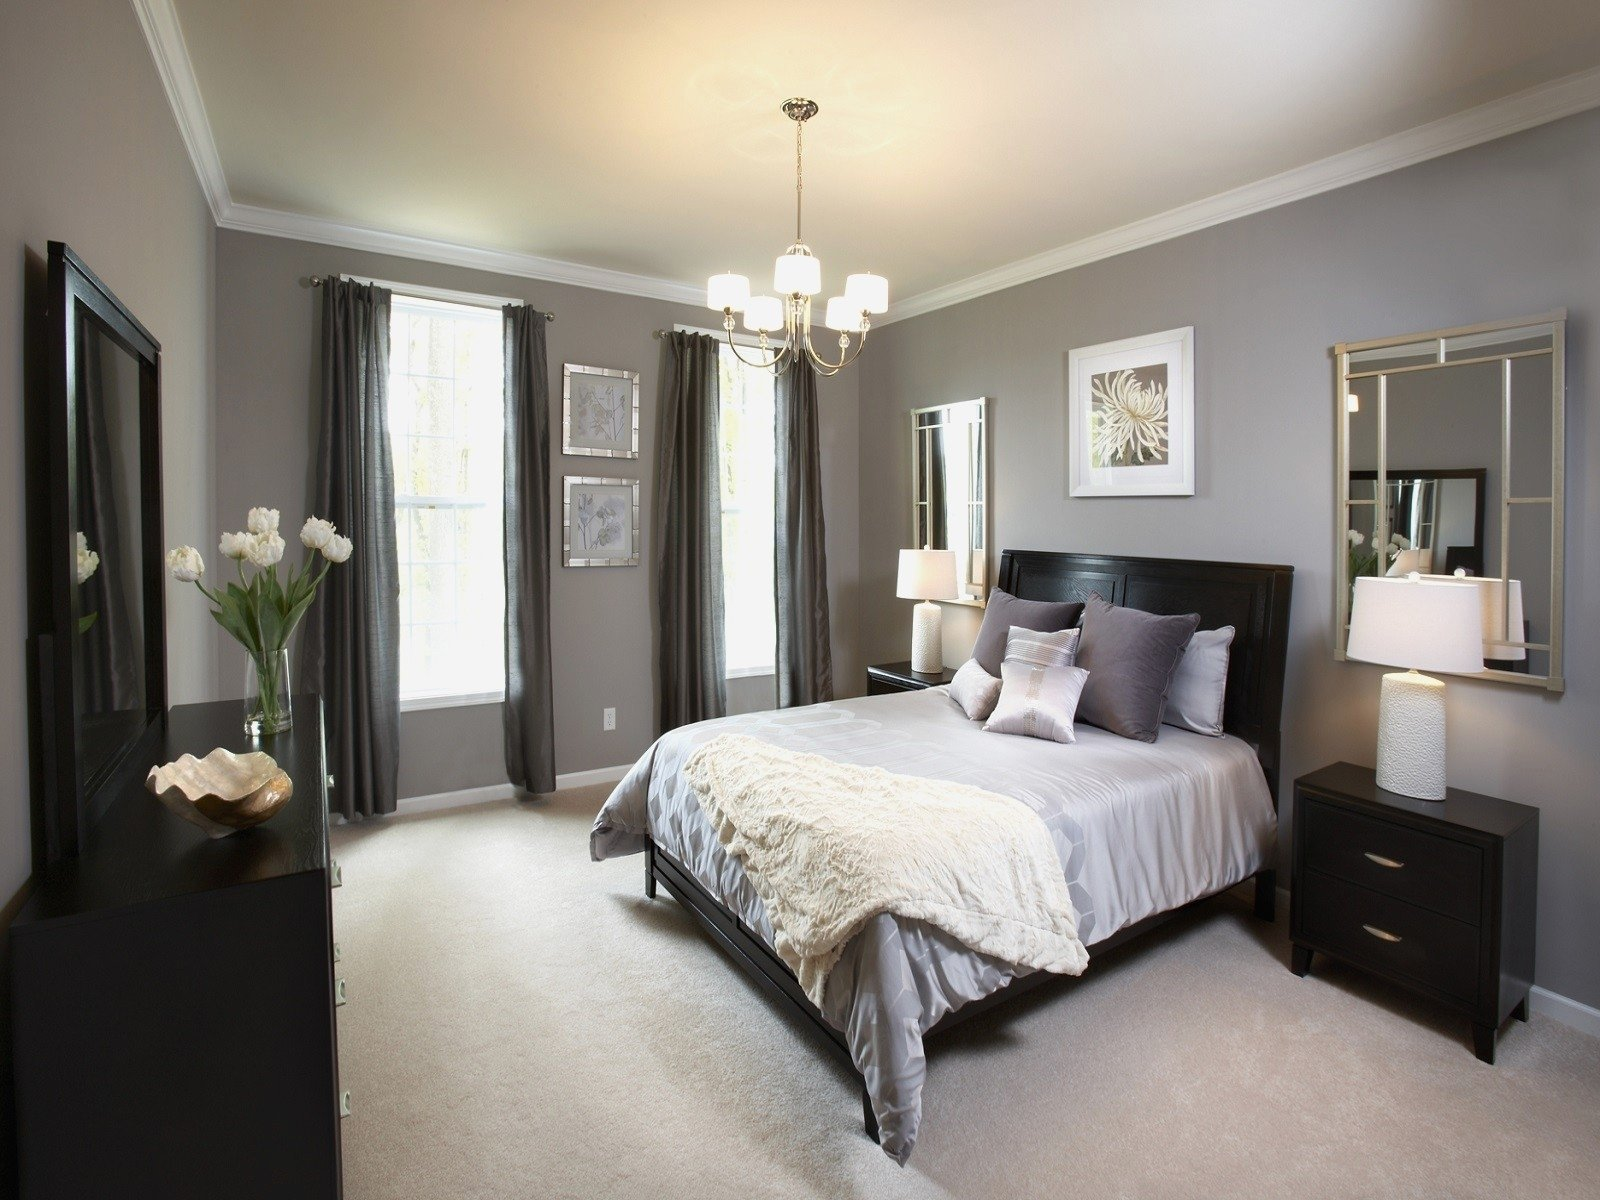 10 Amazing Master Bedroom Decorating Ideas On A Budget 80 most indispensable awesome master bedroom decorating ideas on 2020